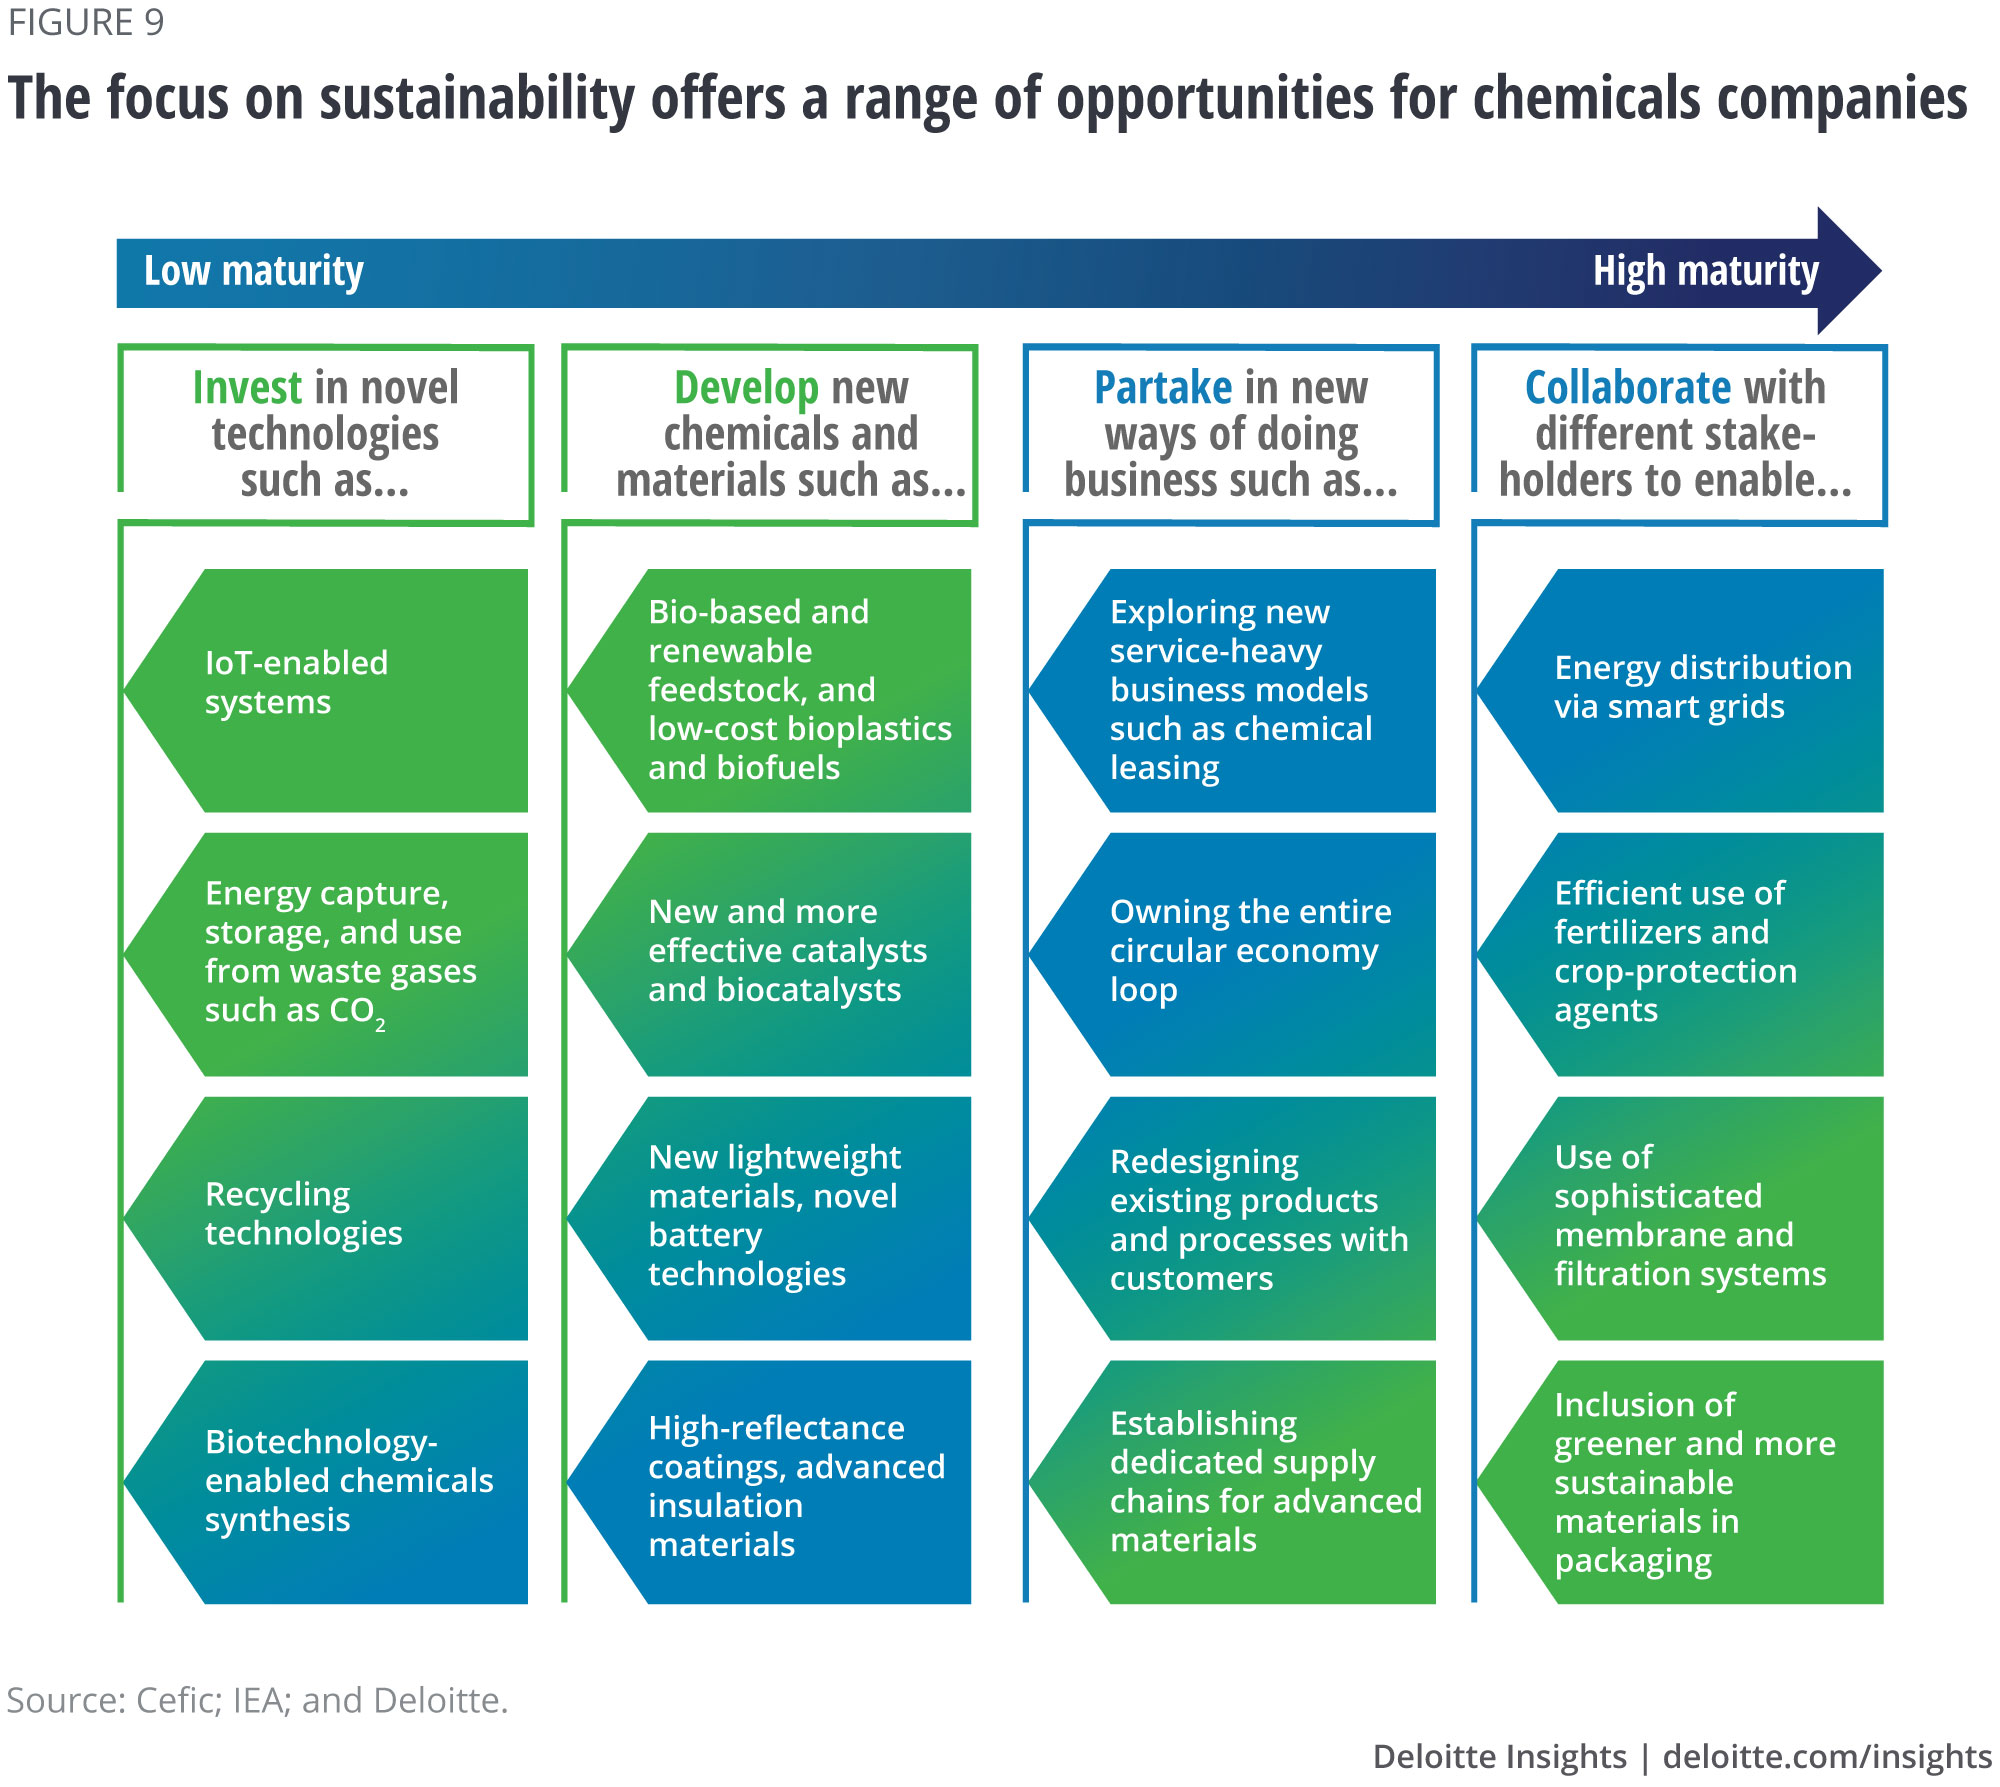 The focus on sustainability offers a range of opportunities for chemicals companies